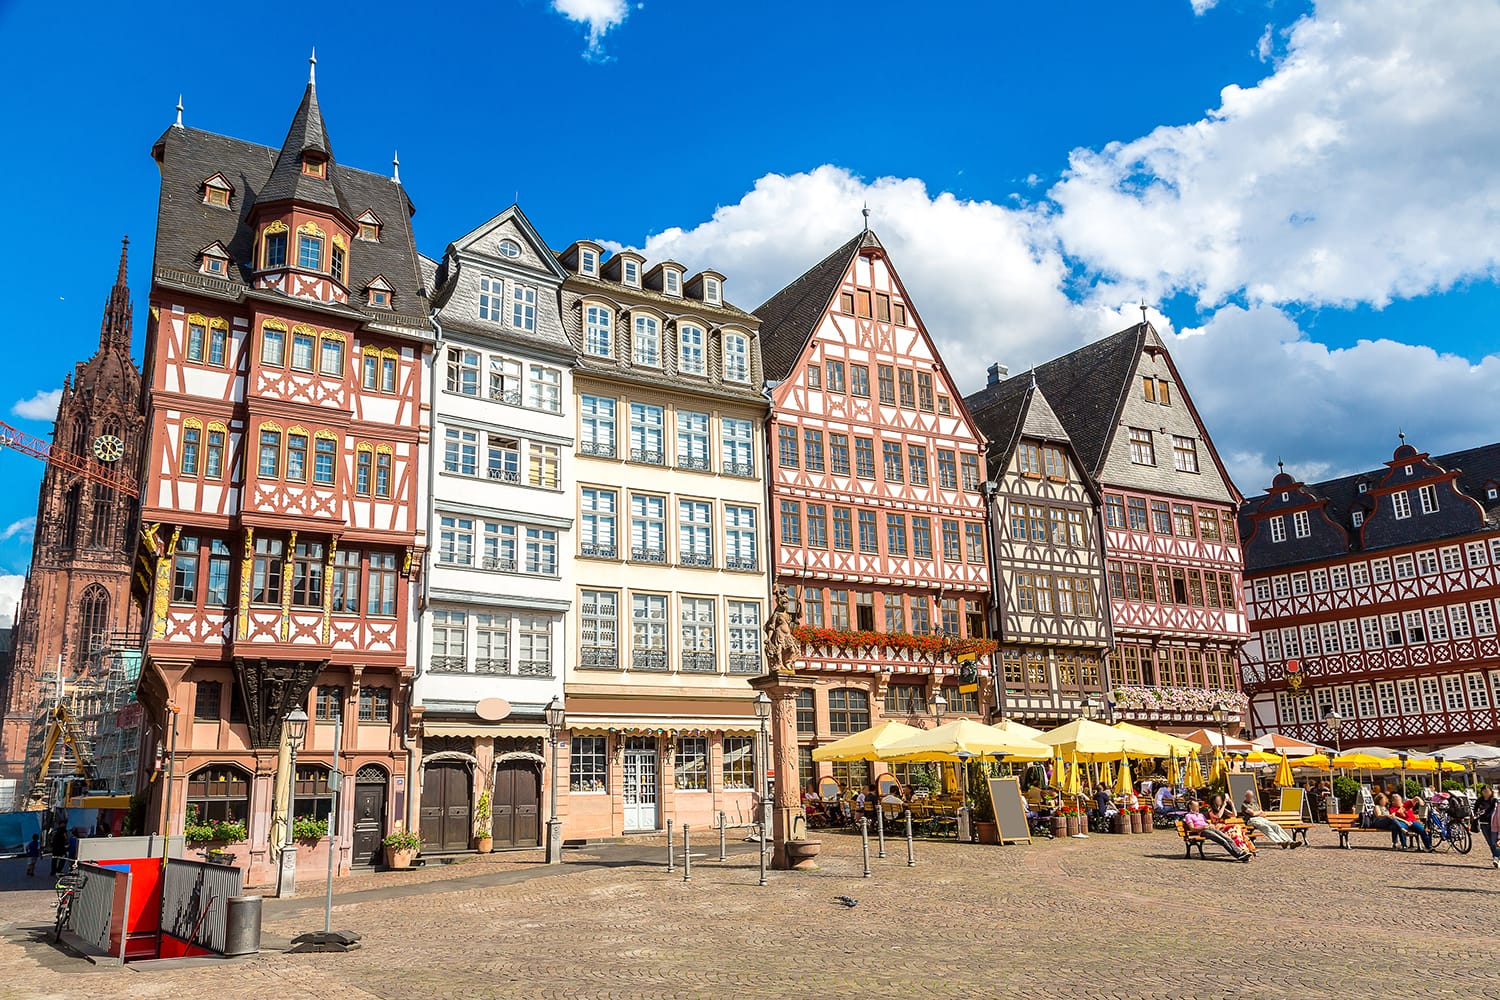 Old town in Frankfurt, Germany